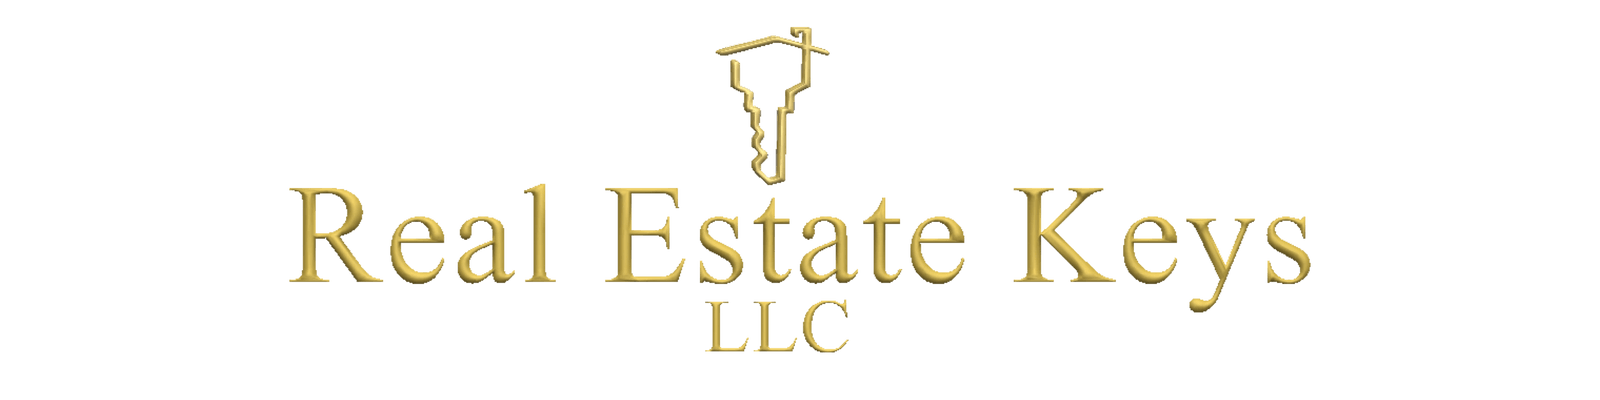 Real Estate Keys, LLC